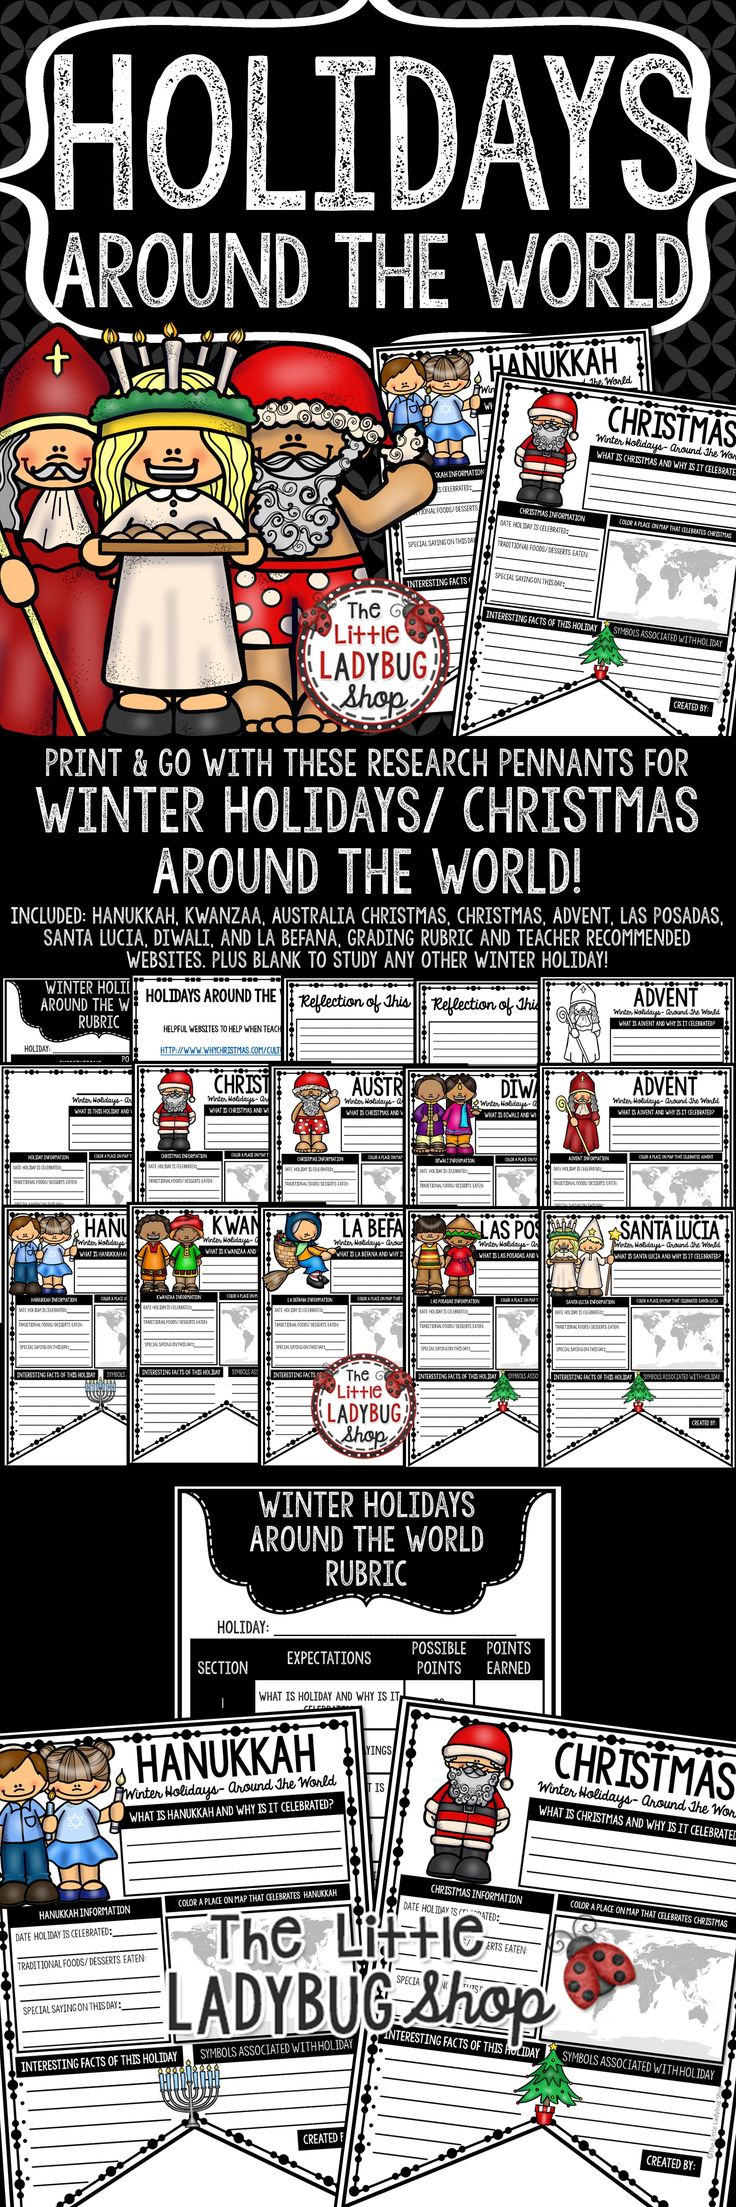 You will LOVE these Winter Holidays Around The World Pennants. You just need to Print & Go with these Christmas Around the World Activities to celebrate this special holiday learning about cultures around the world! They are perfect to use the month of December as mini research projects! YOU will LOVE displaying these Christmas Around The World Posters!